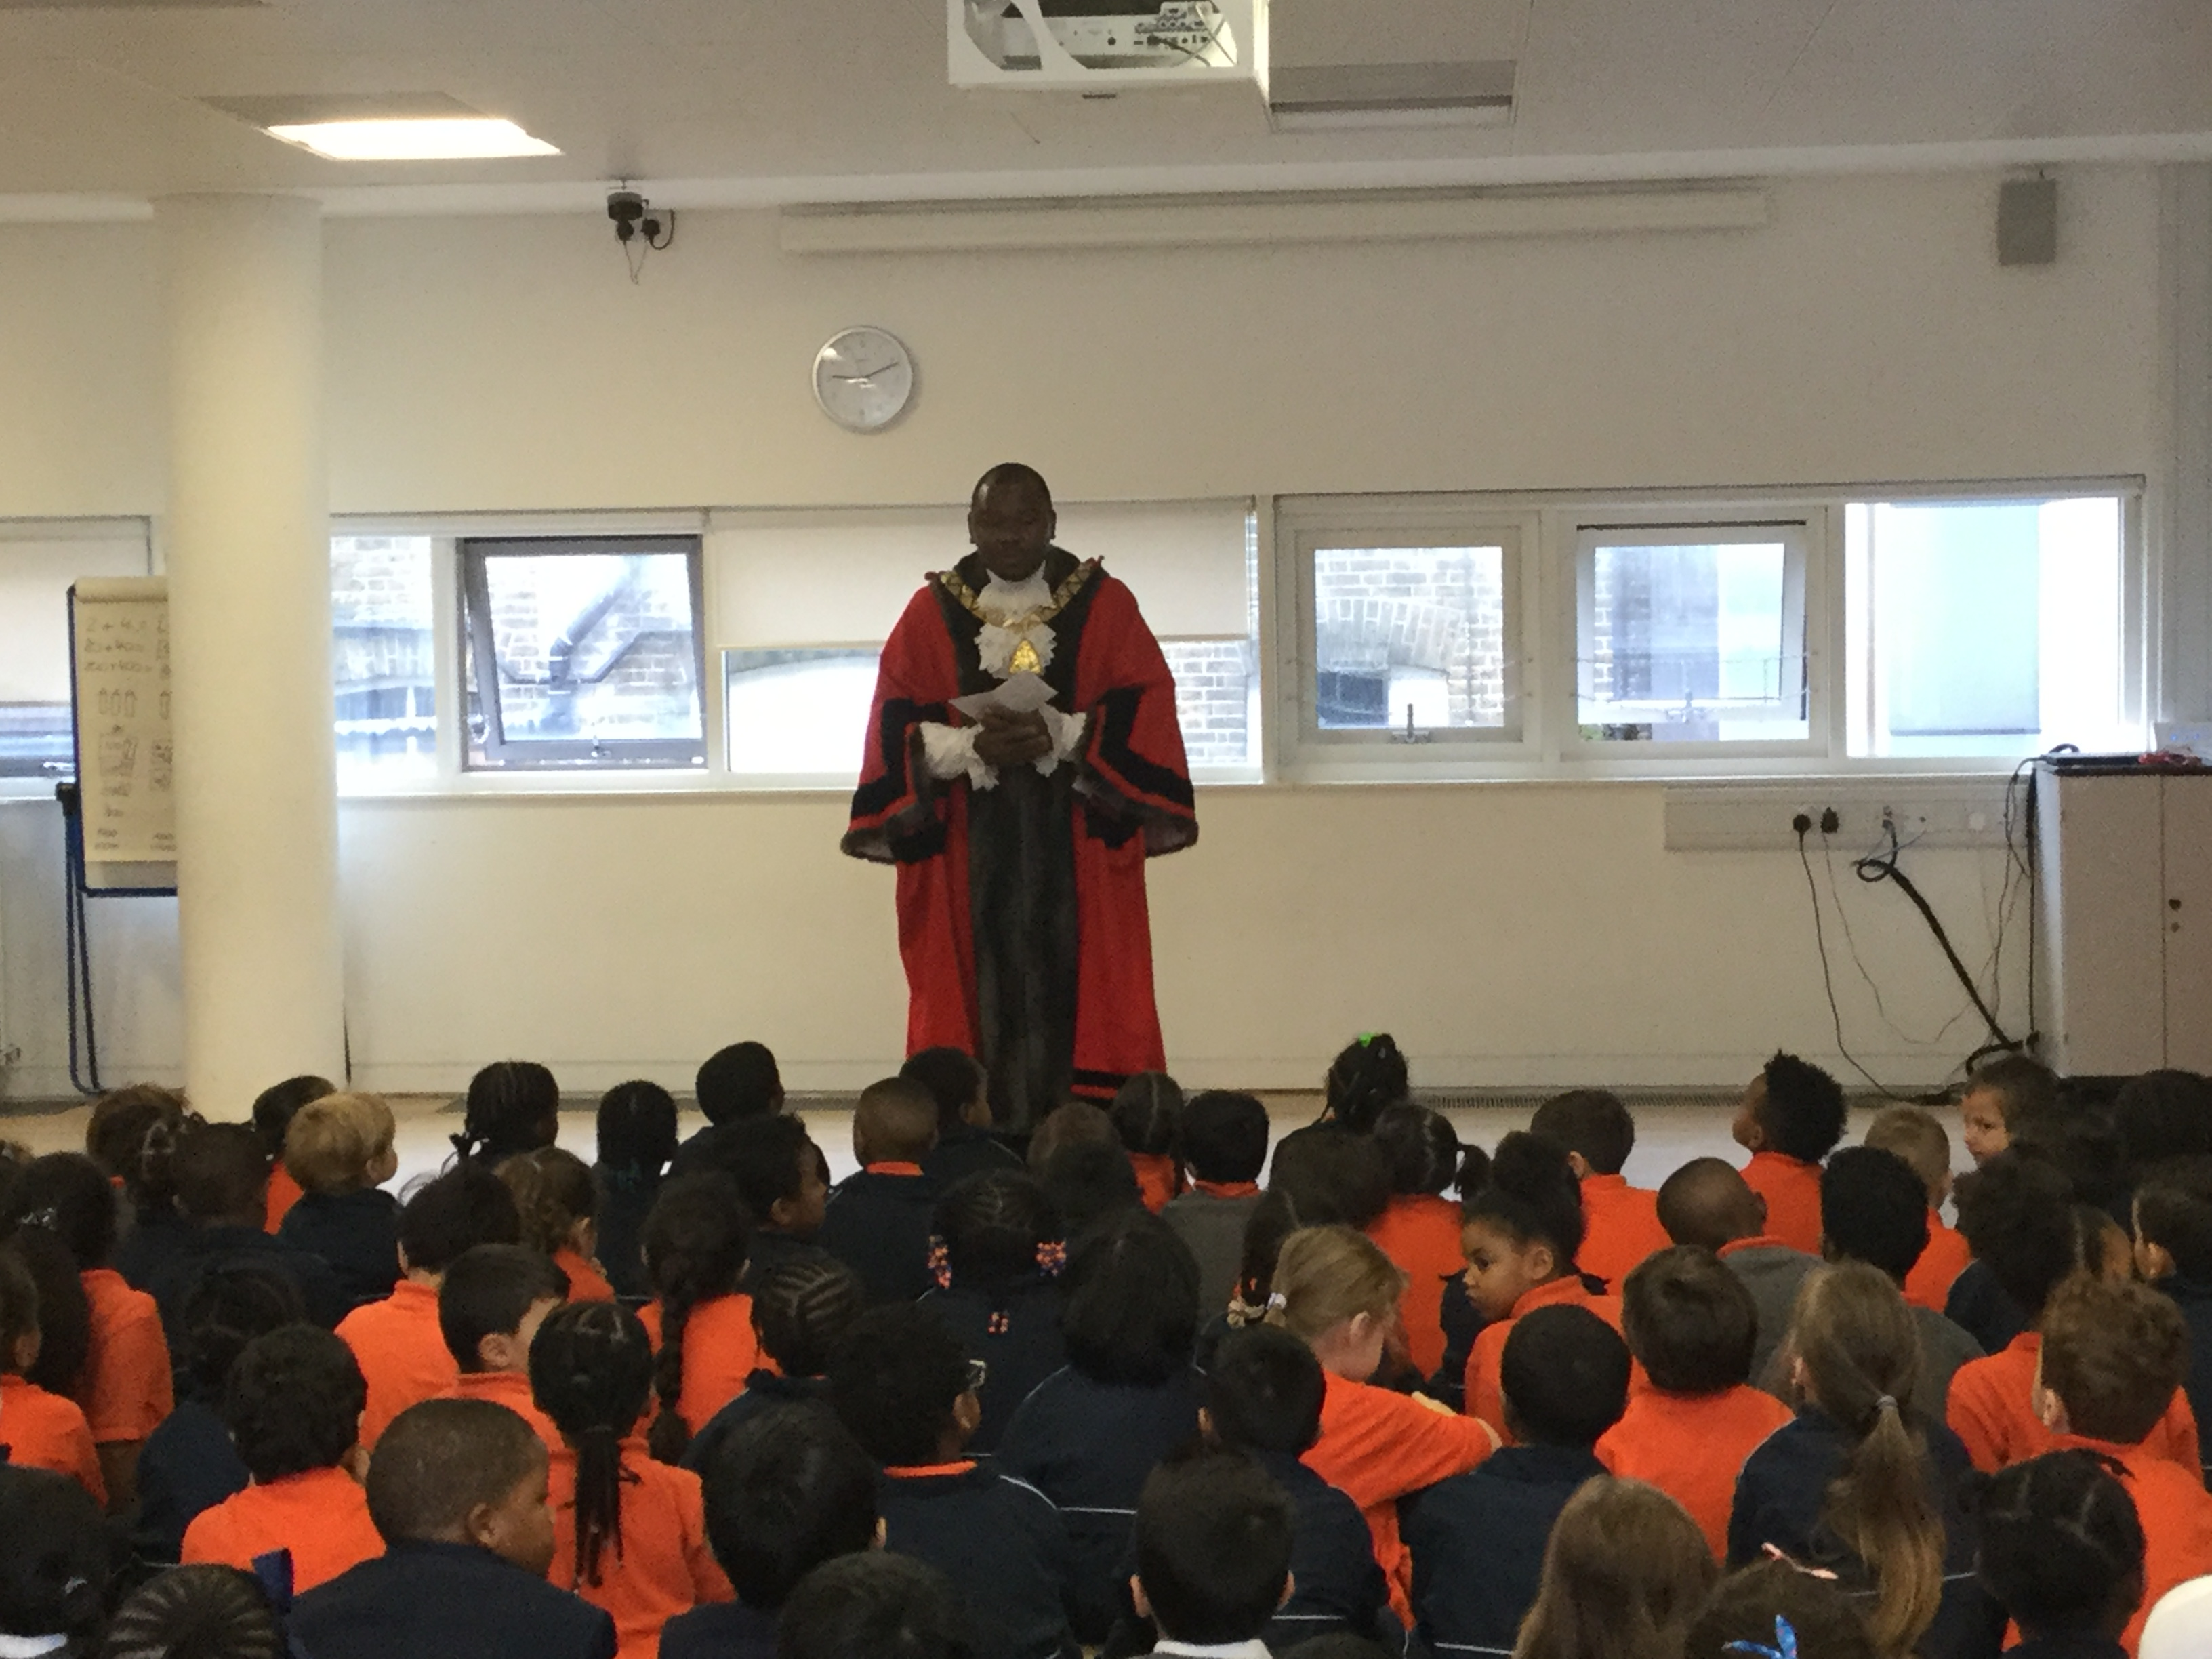 The Worshipful Mayor of Kilburn joined assembly on 15th October as part of Black History Month